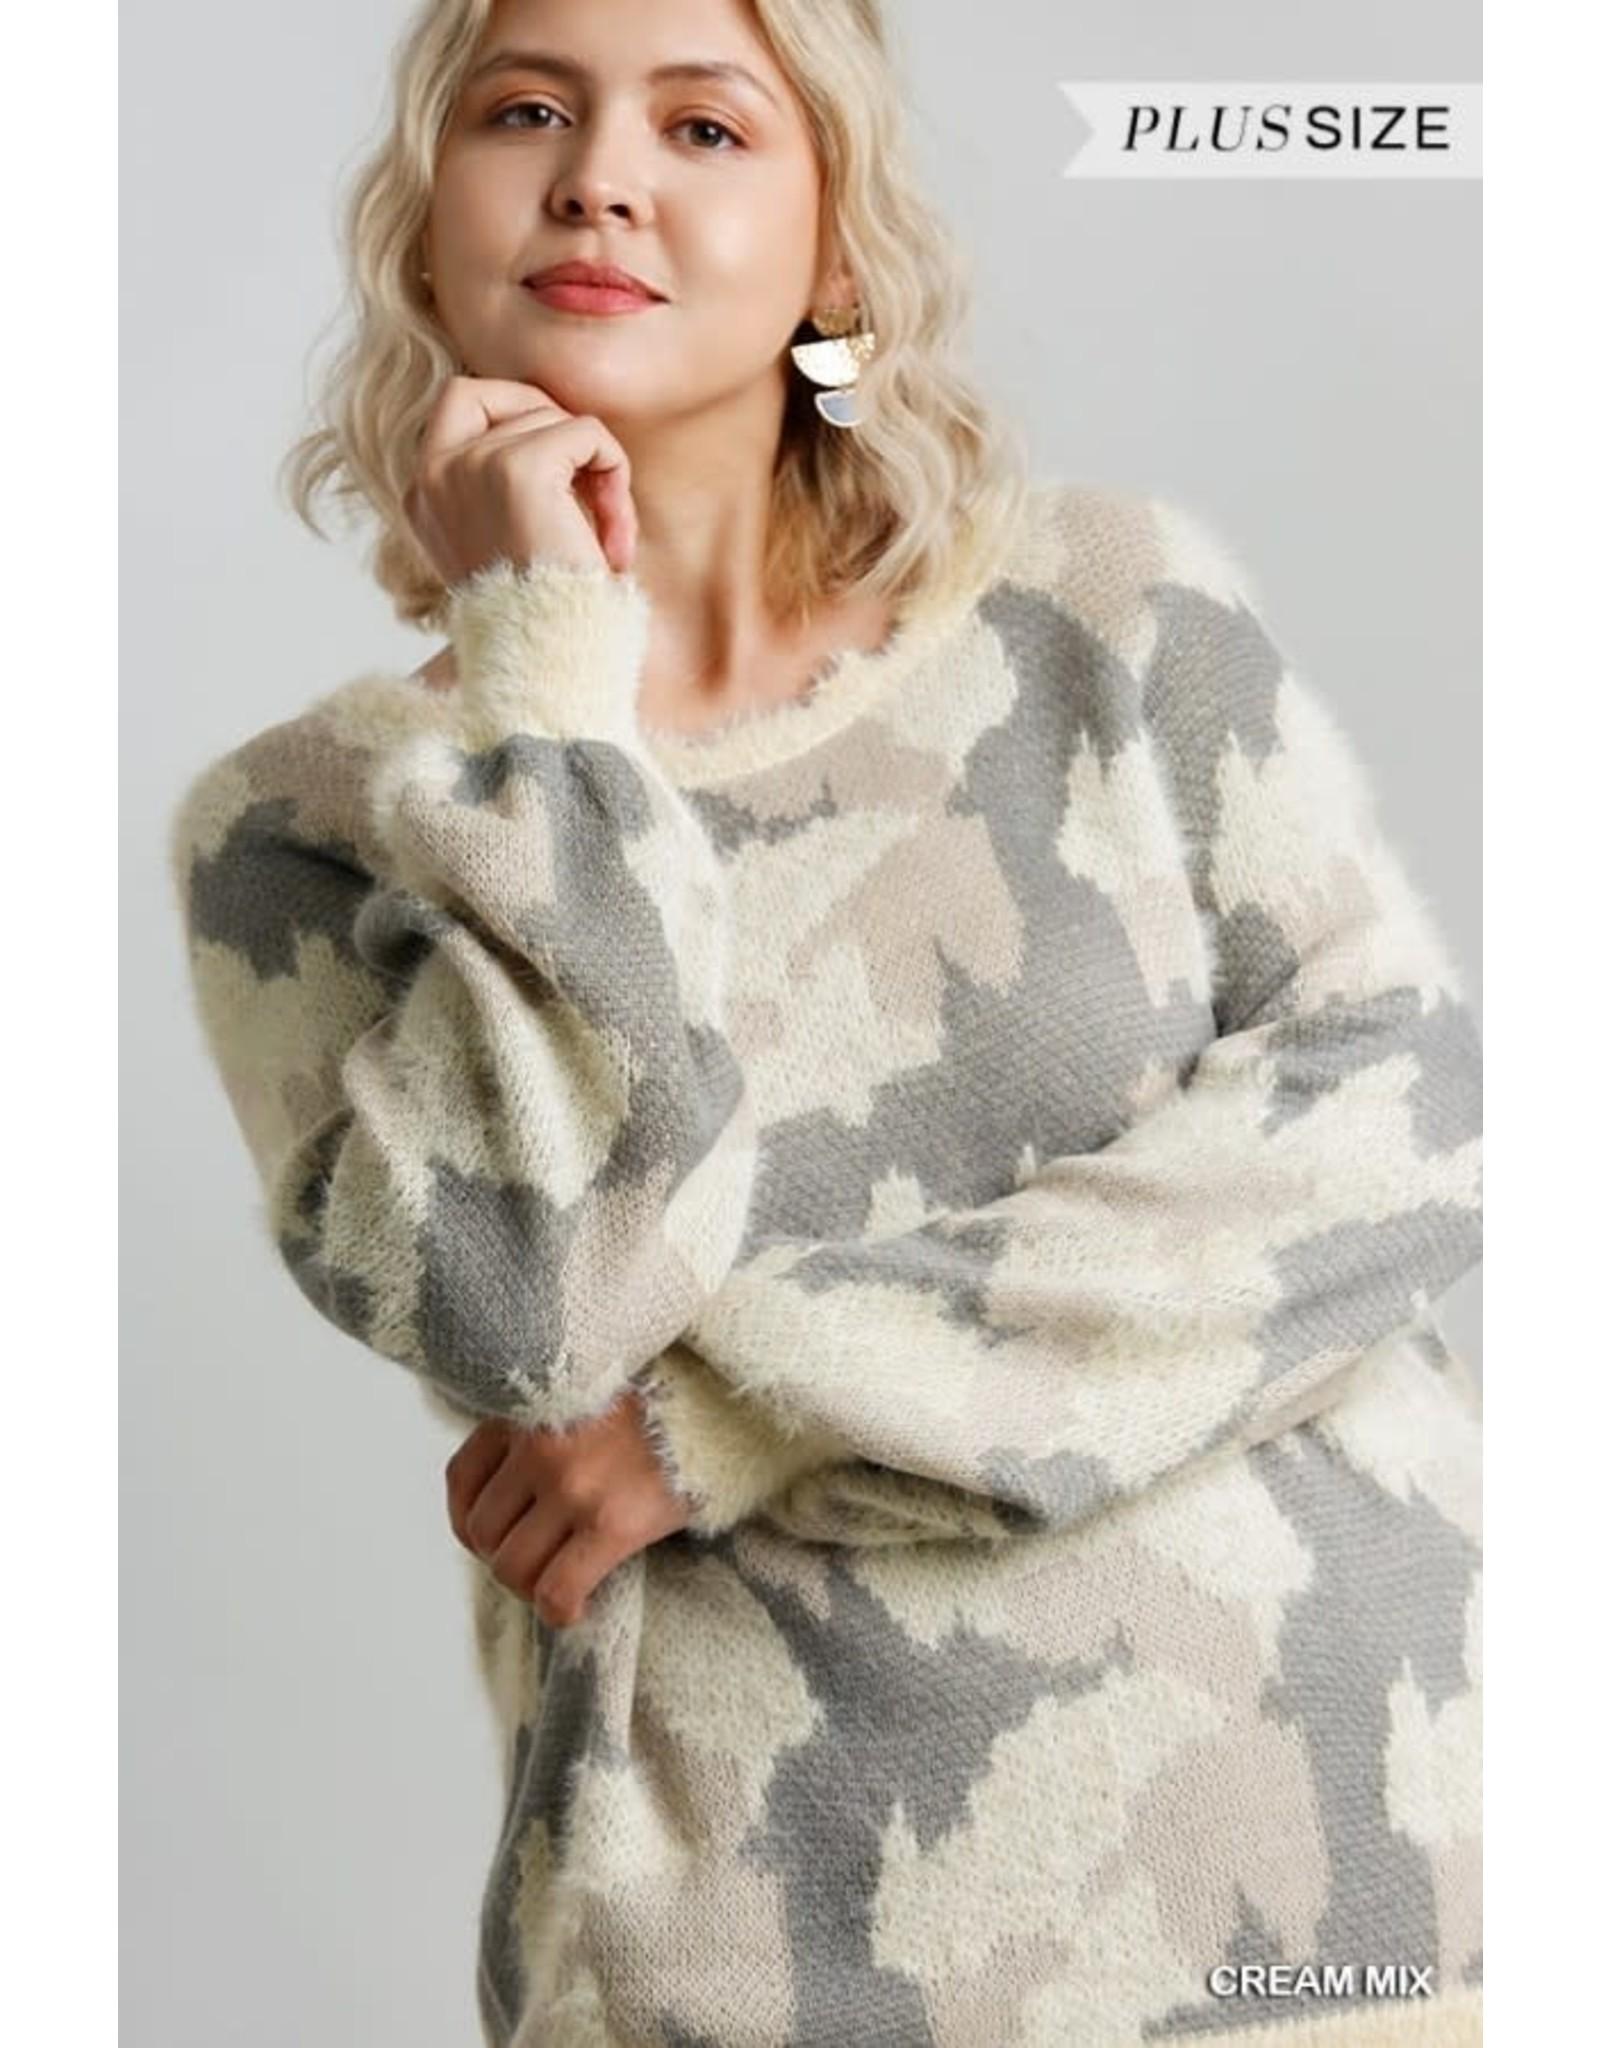 Army Print Long Sleeve Pullover Fuzzy Knit Sweater (Cream)